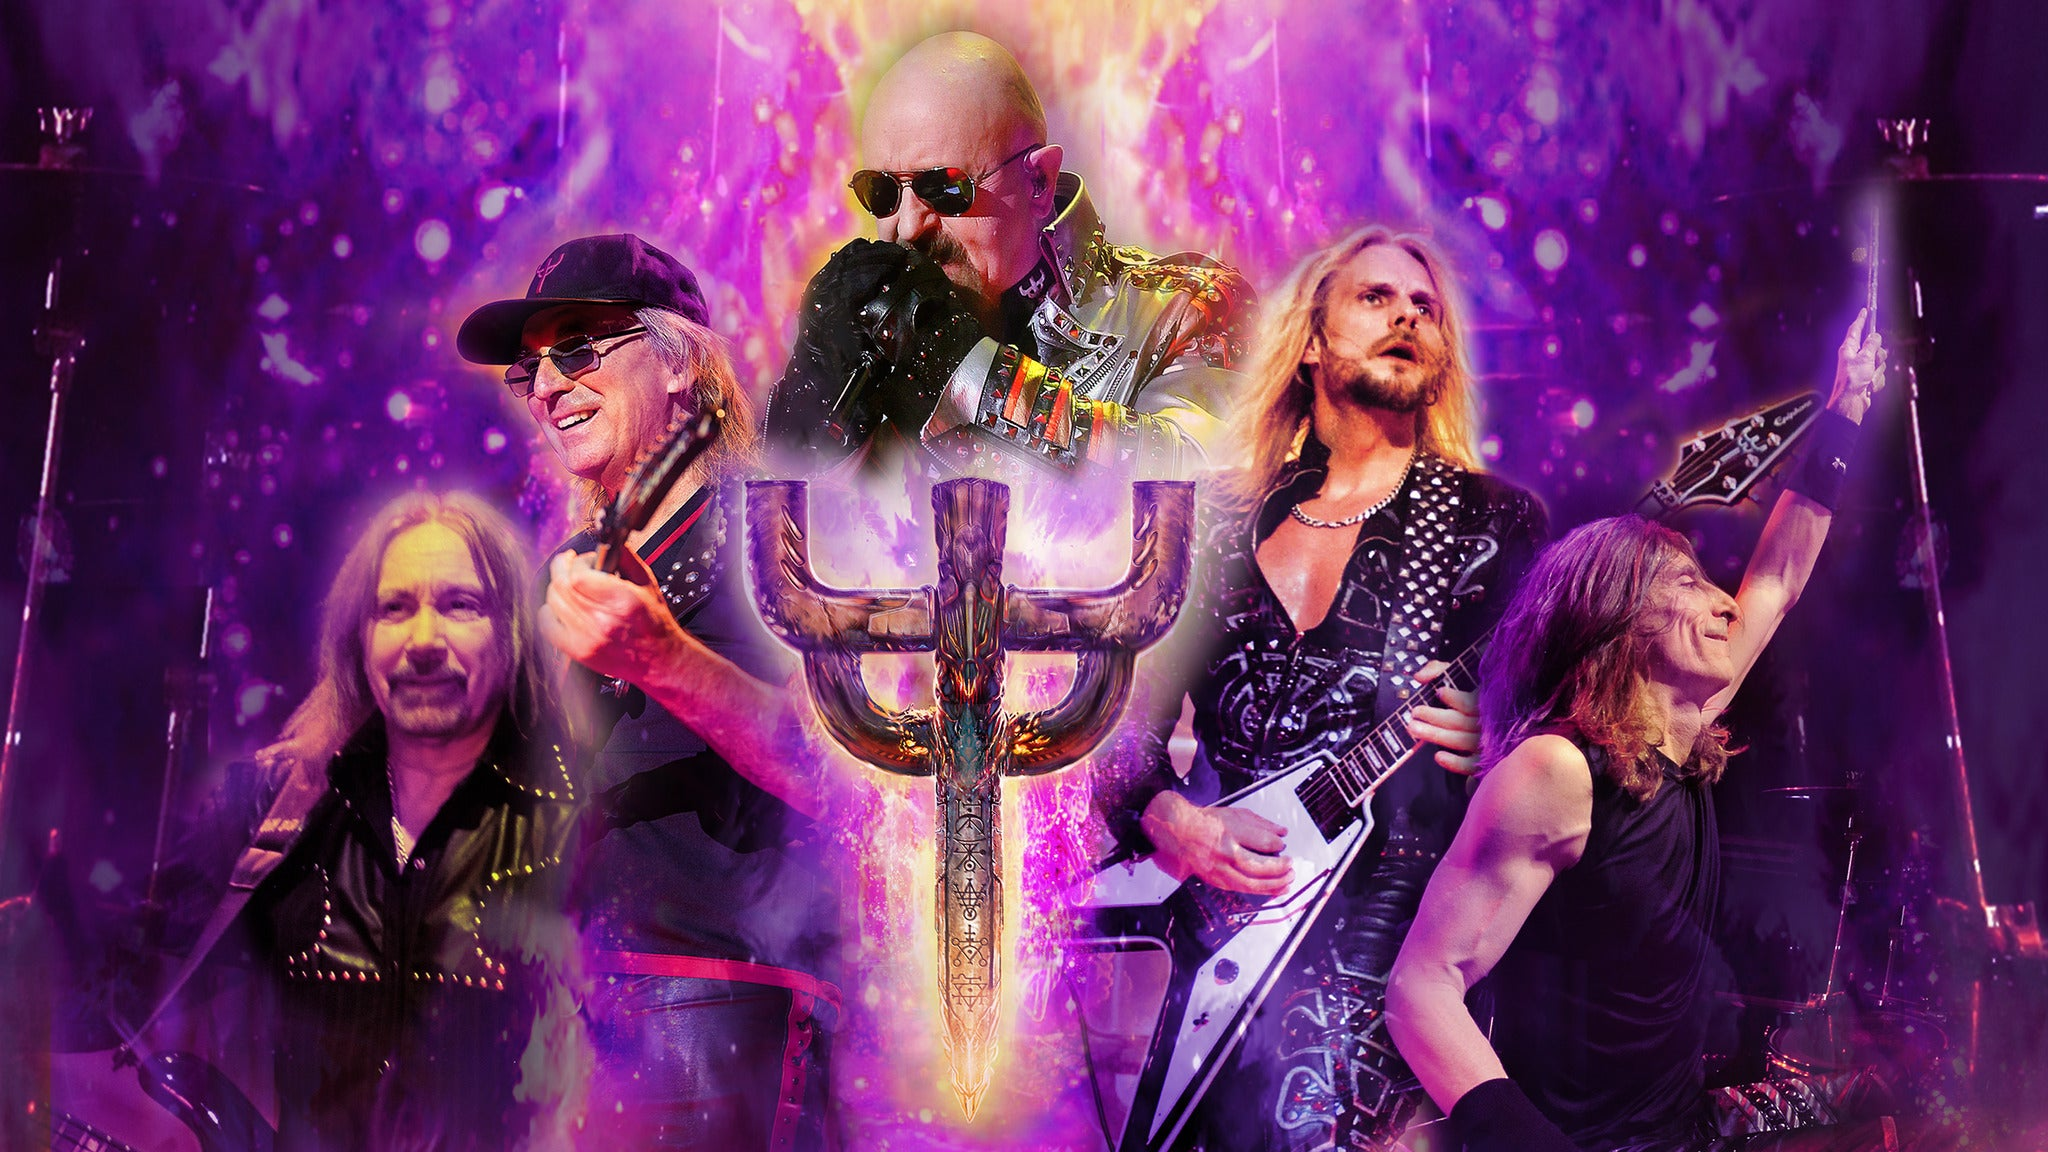 Judas Priest w/ Uriah Heep